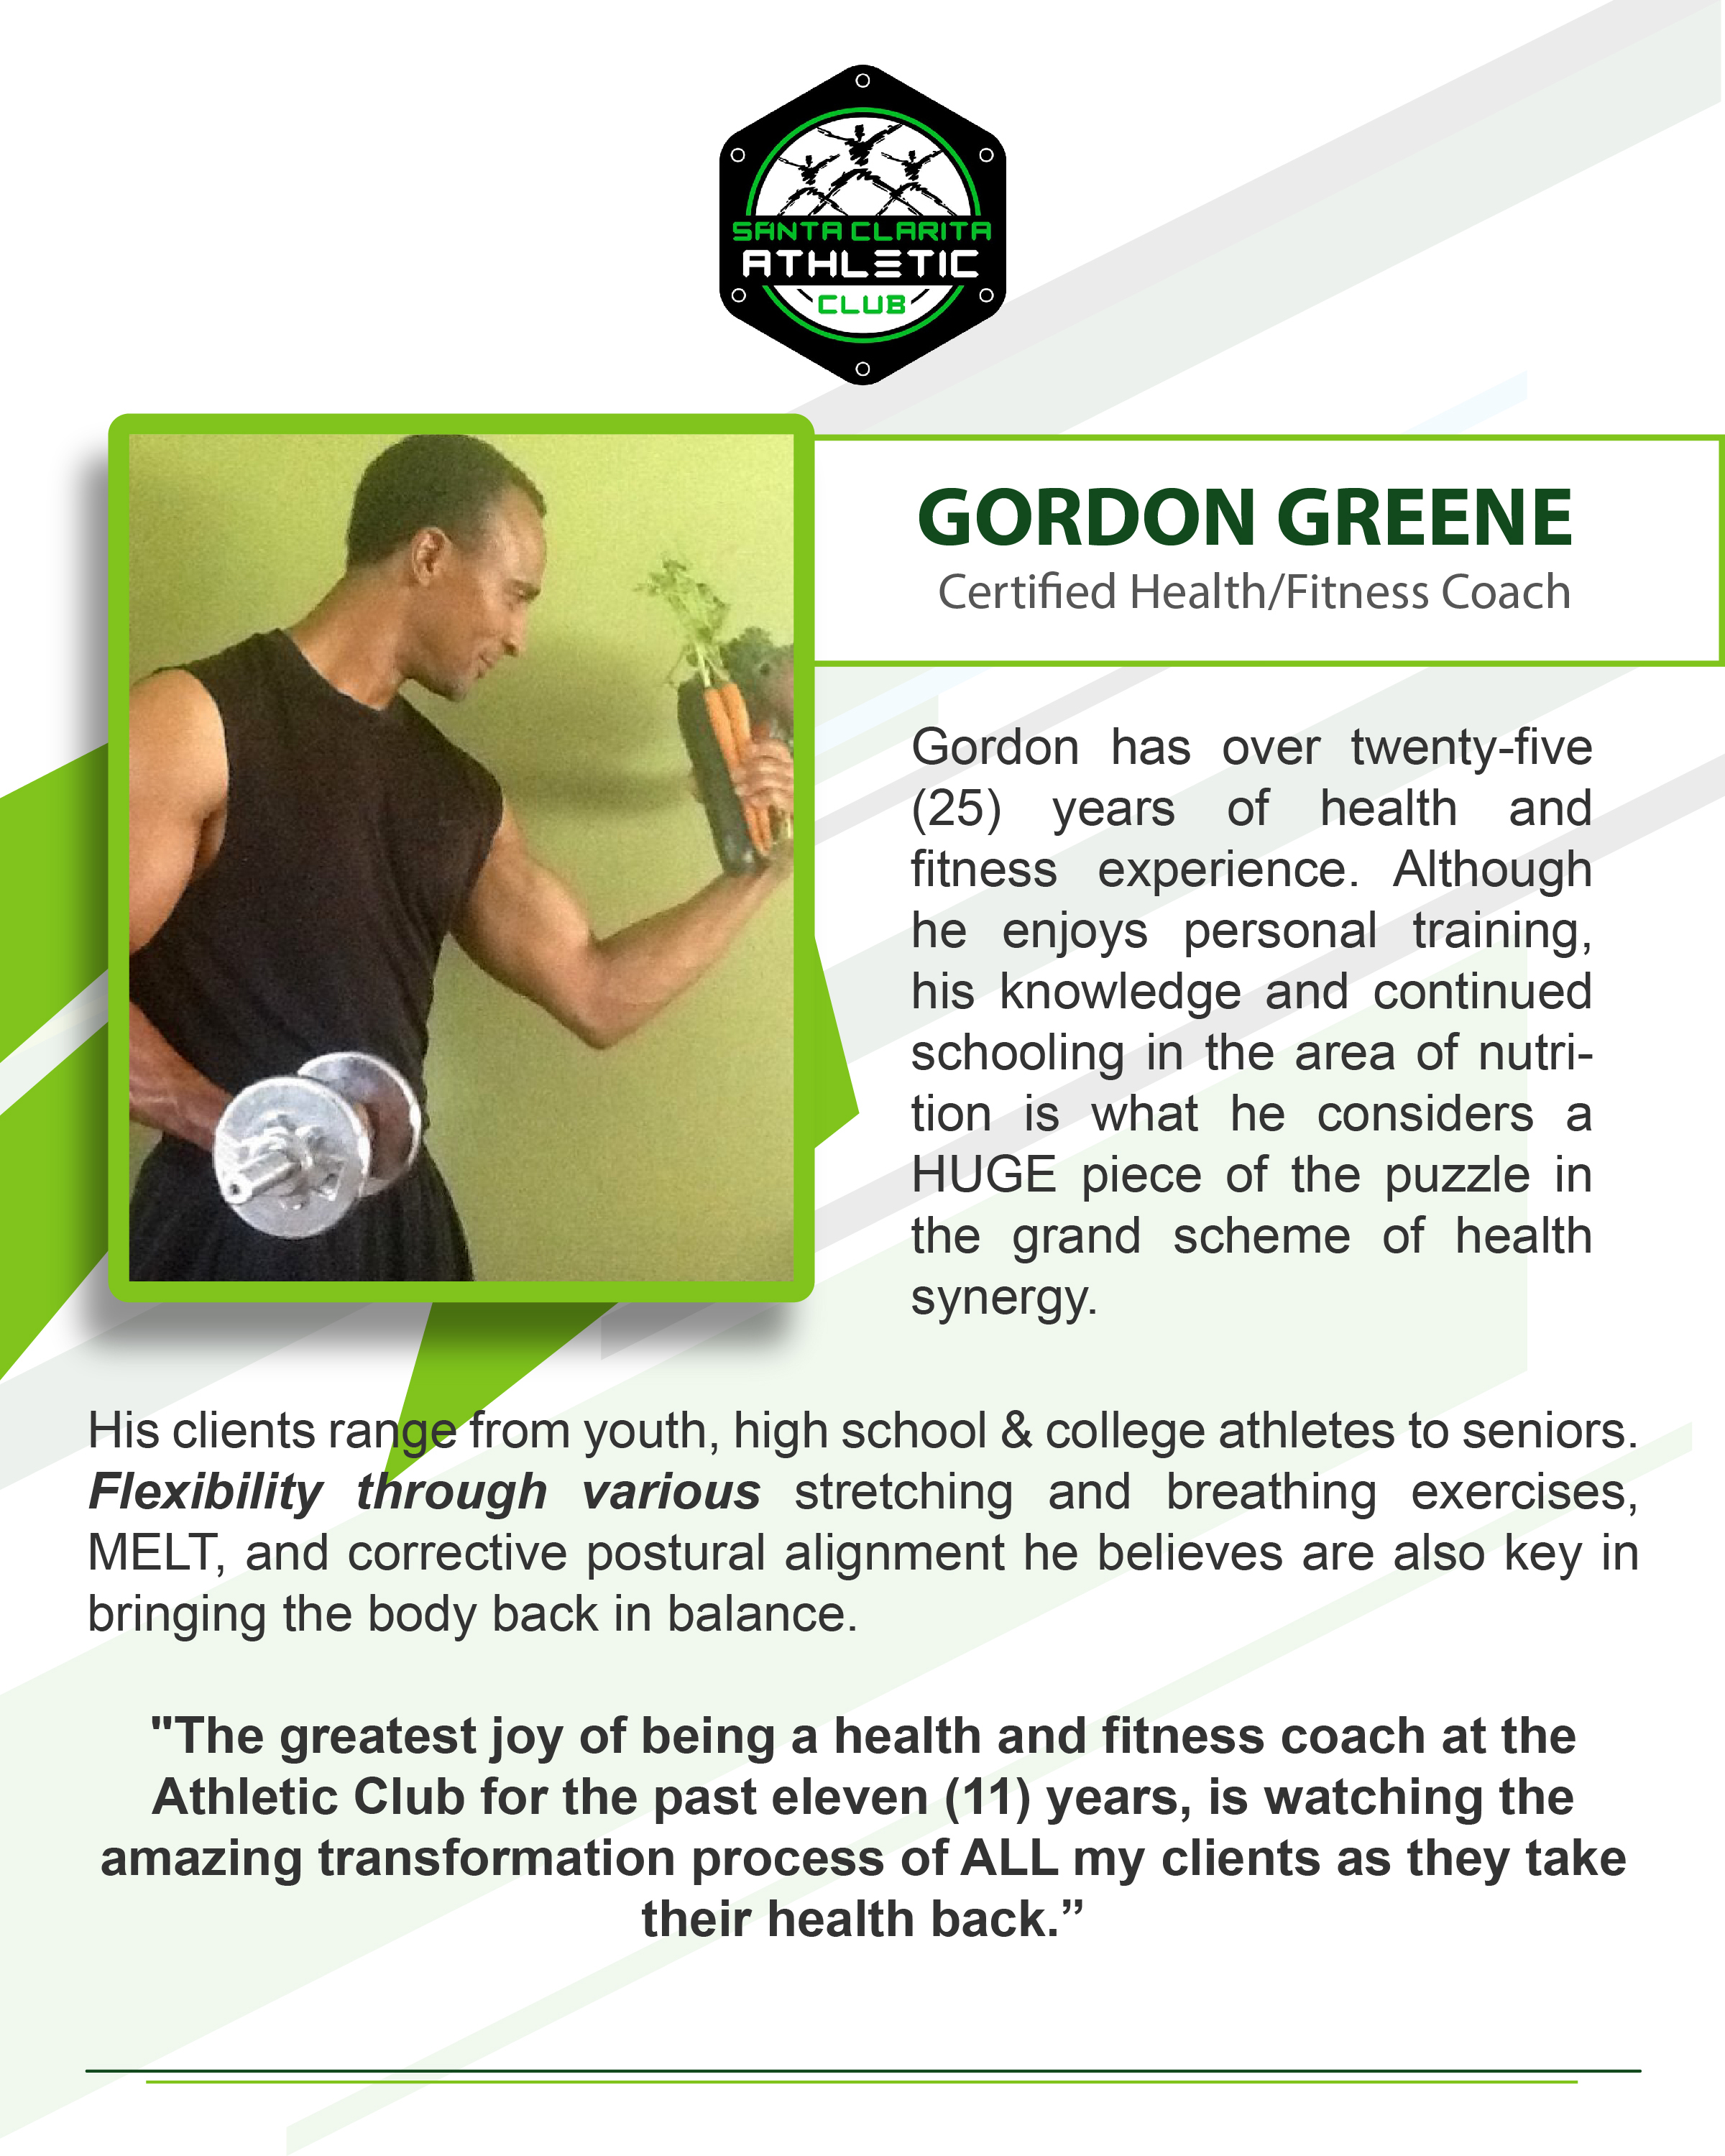 Gordon Greene - Certified Personal Trainer